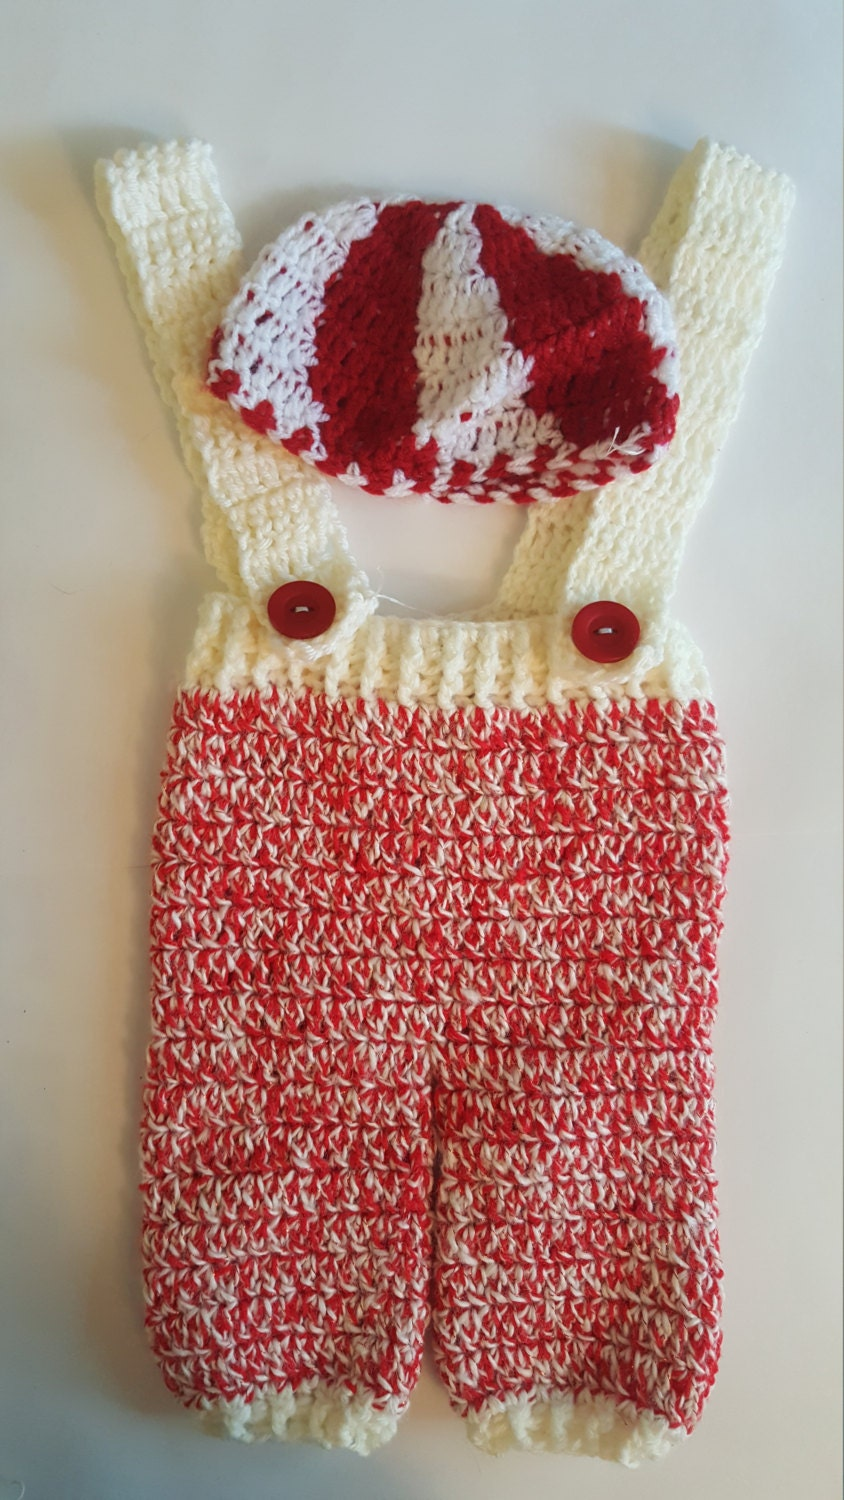 Peppermint Swirl Baby Pant And Hat Set Crocheted Pants And Hat Set